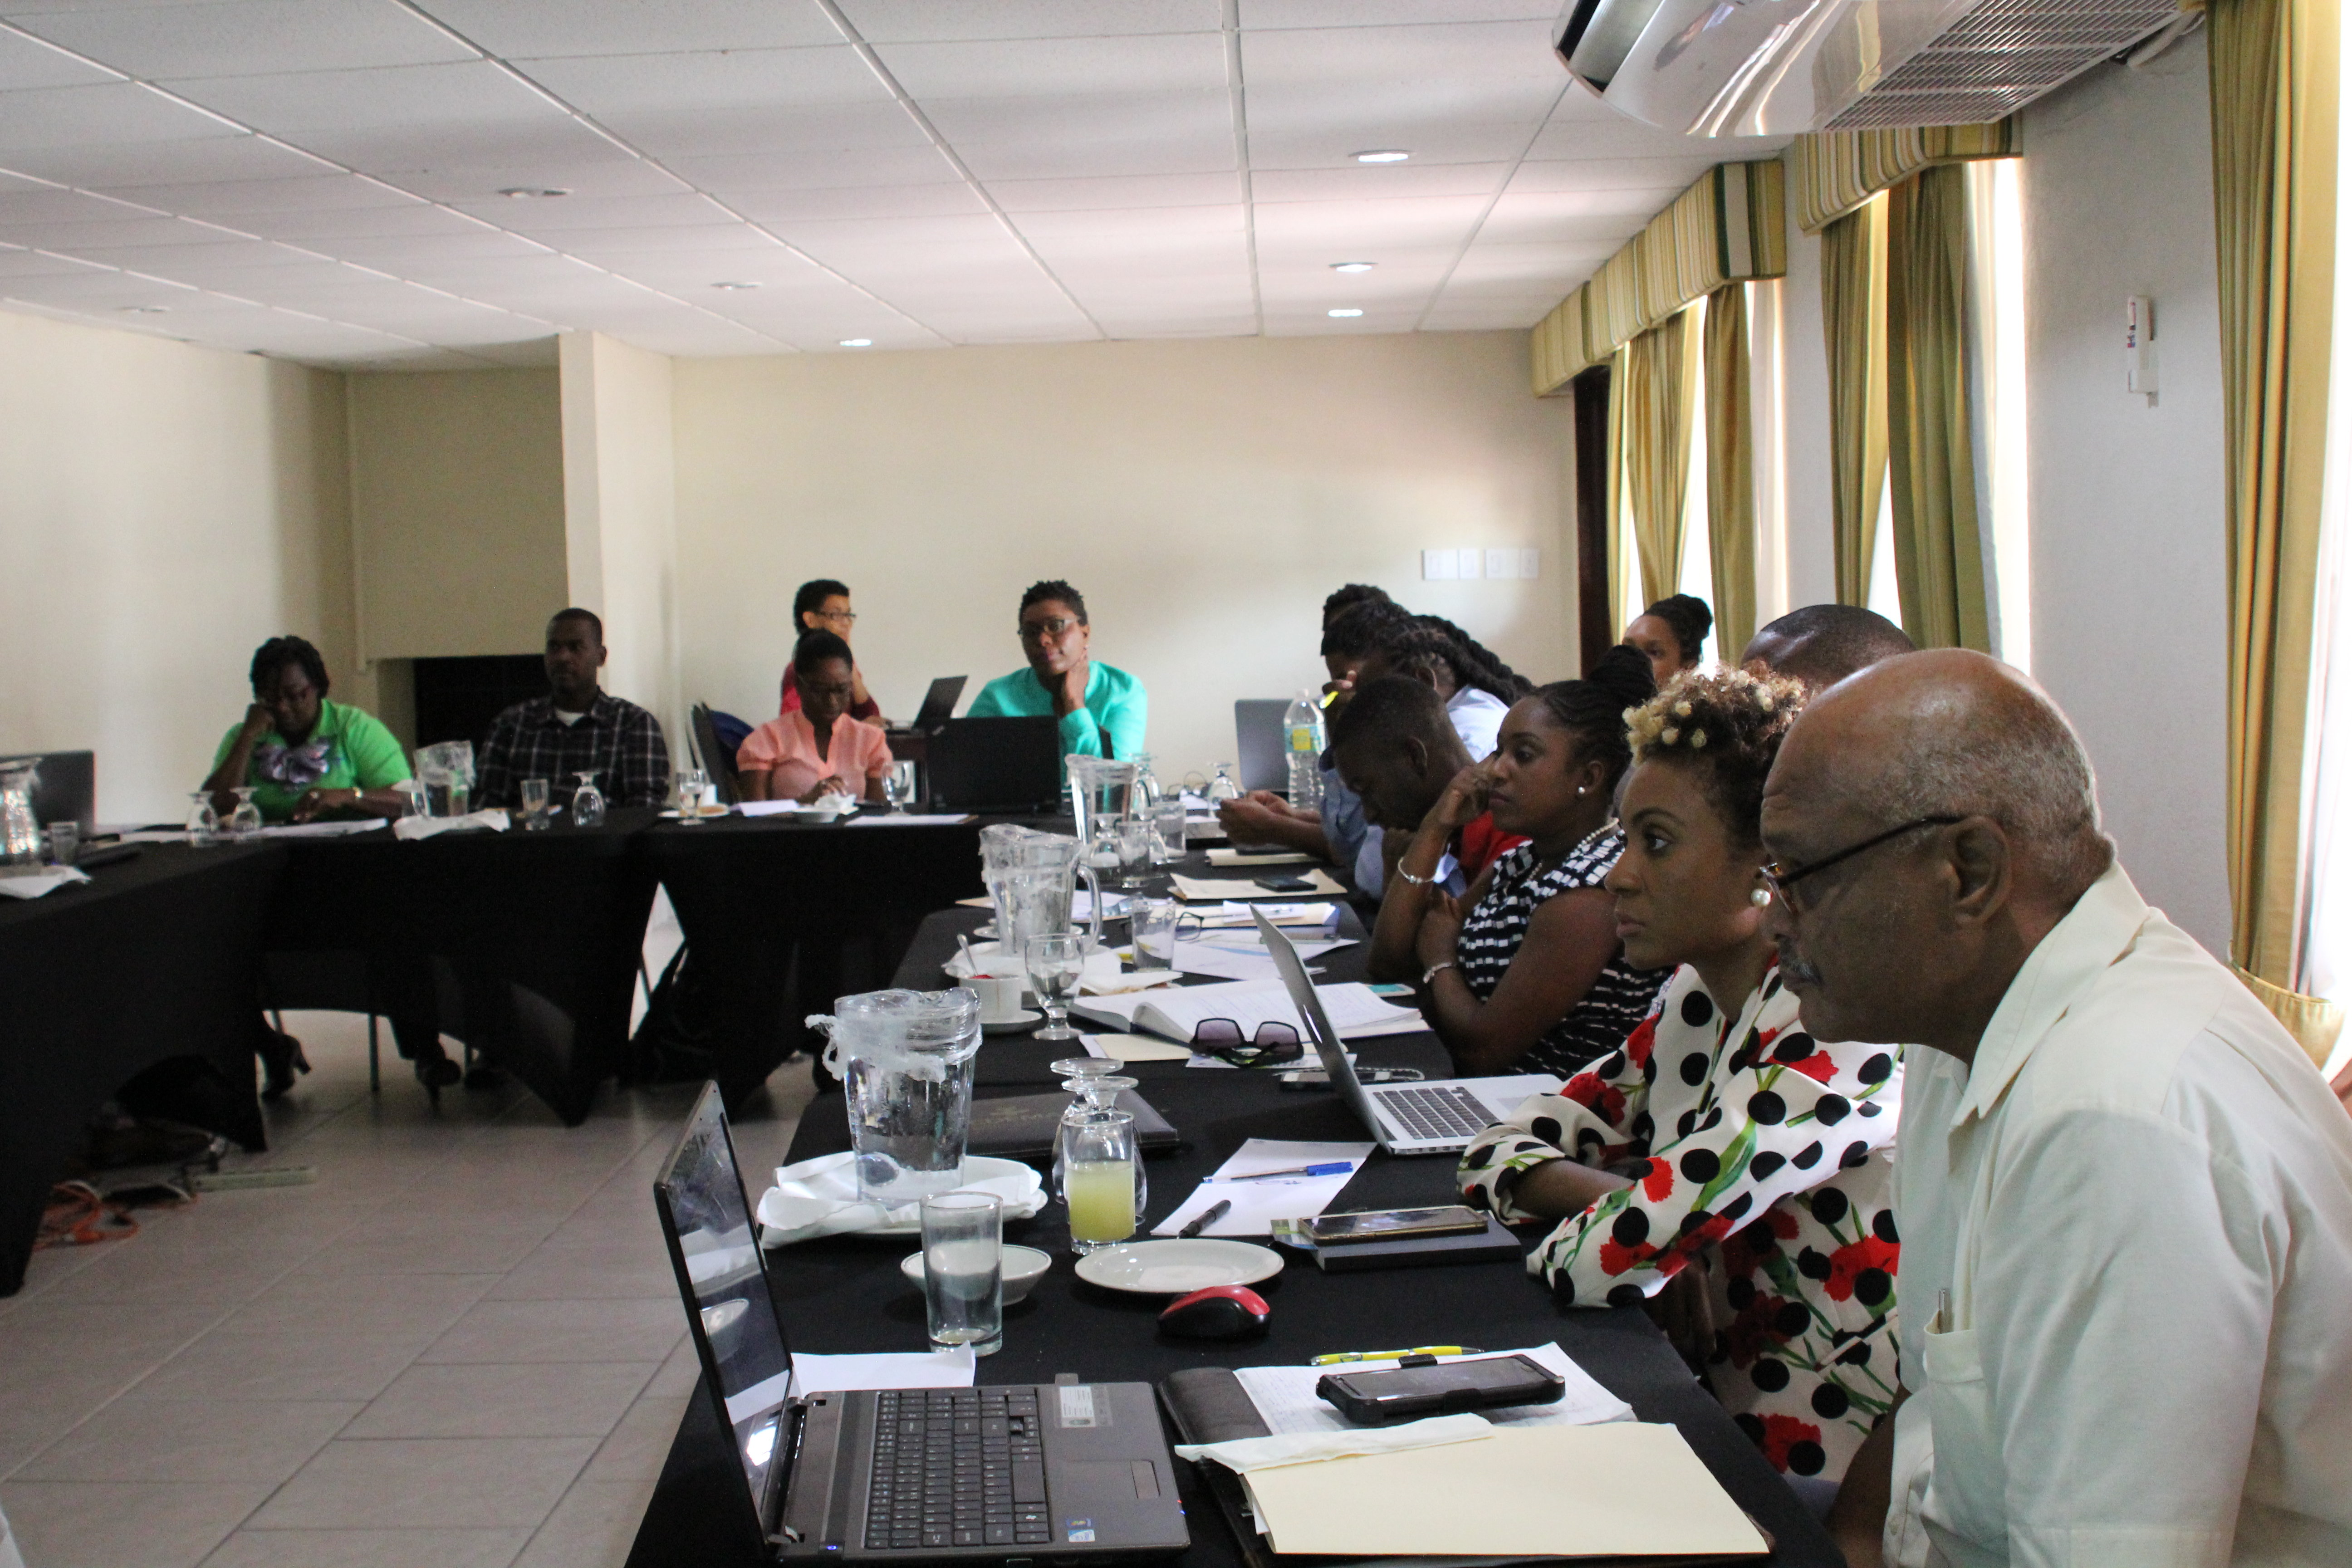 Regional stakeholders involved with numerous areas of resilience-building attended the pilot of the Community-based Disaster Resilience course in Barbados.